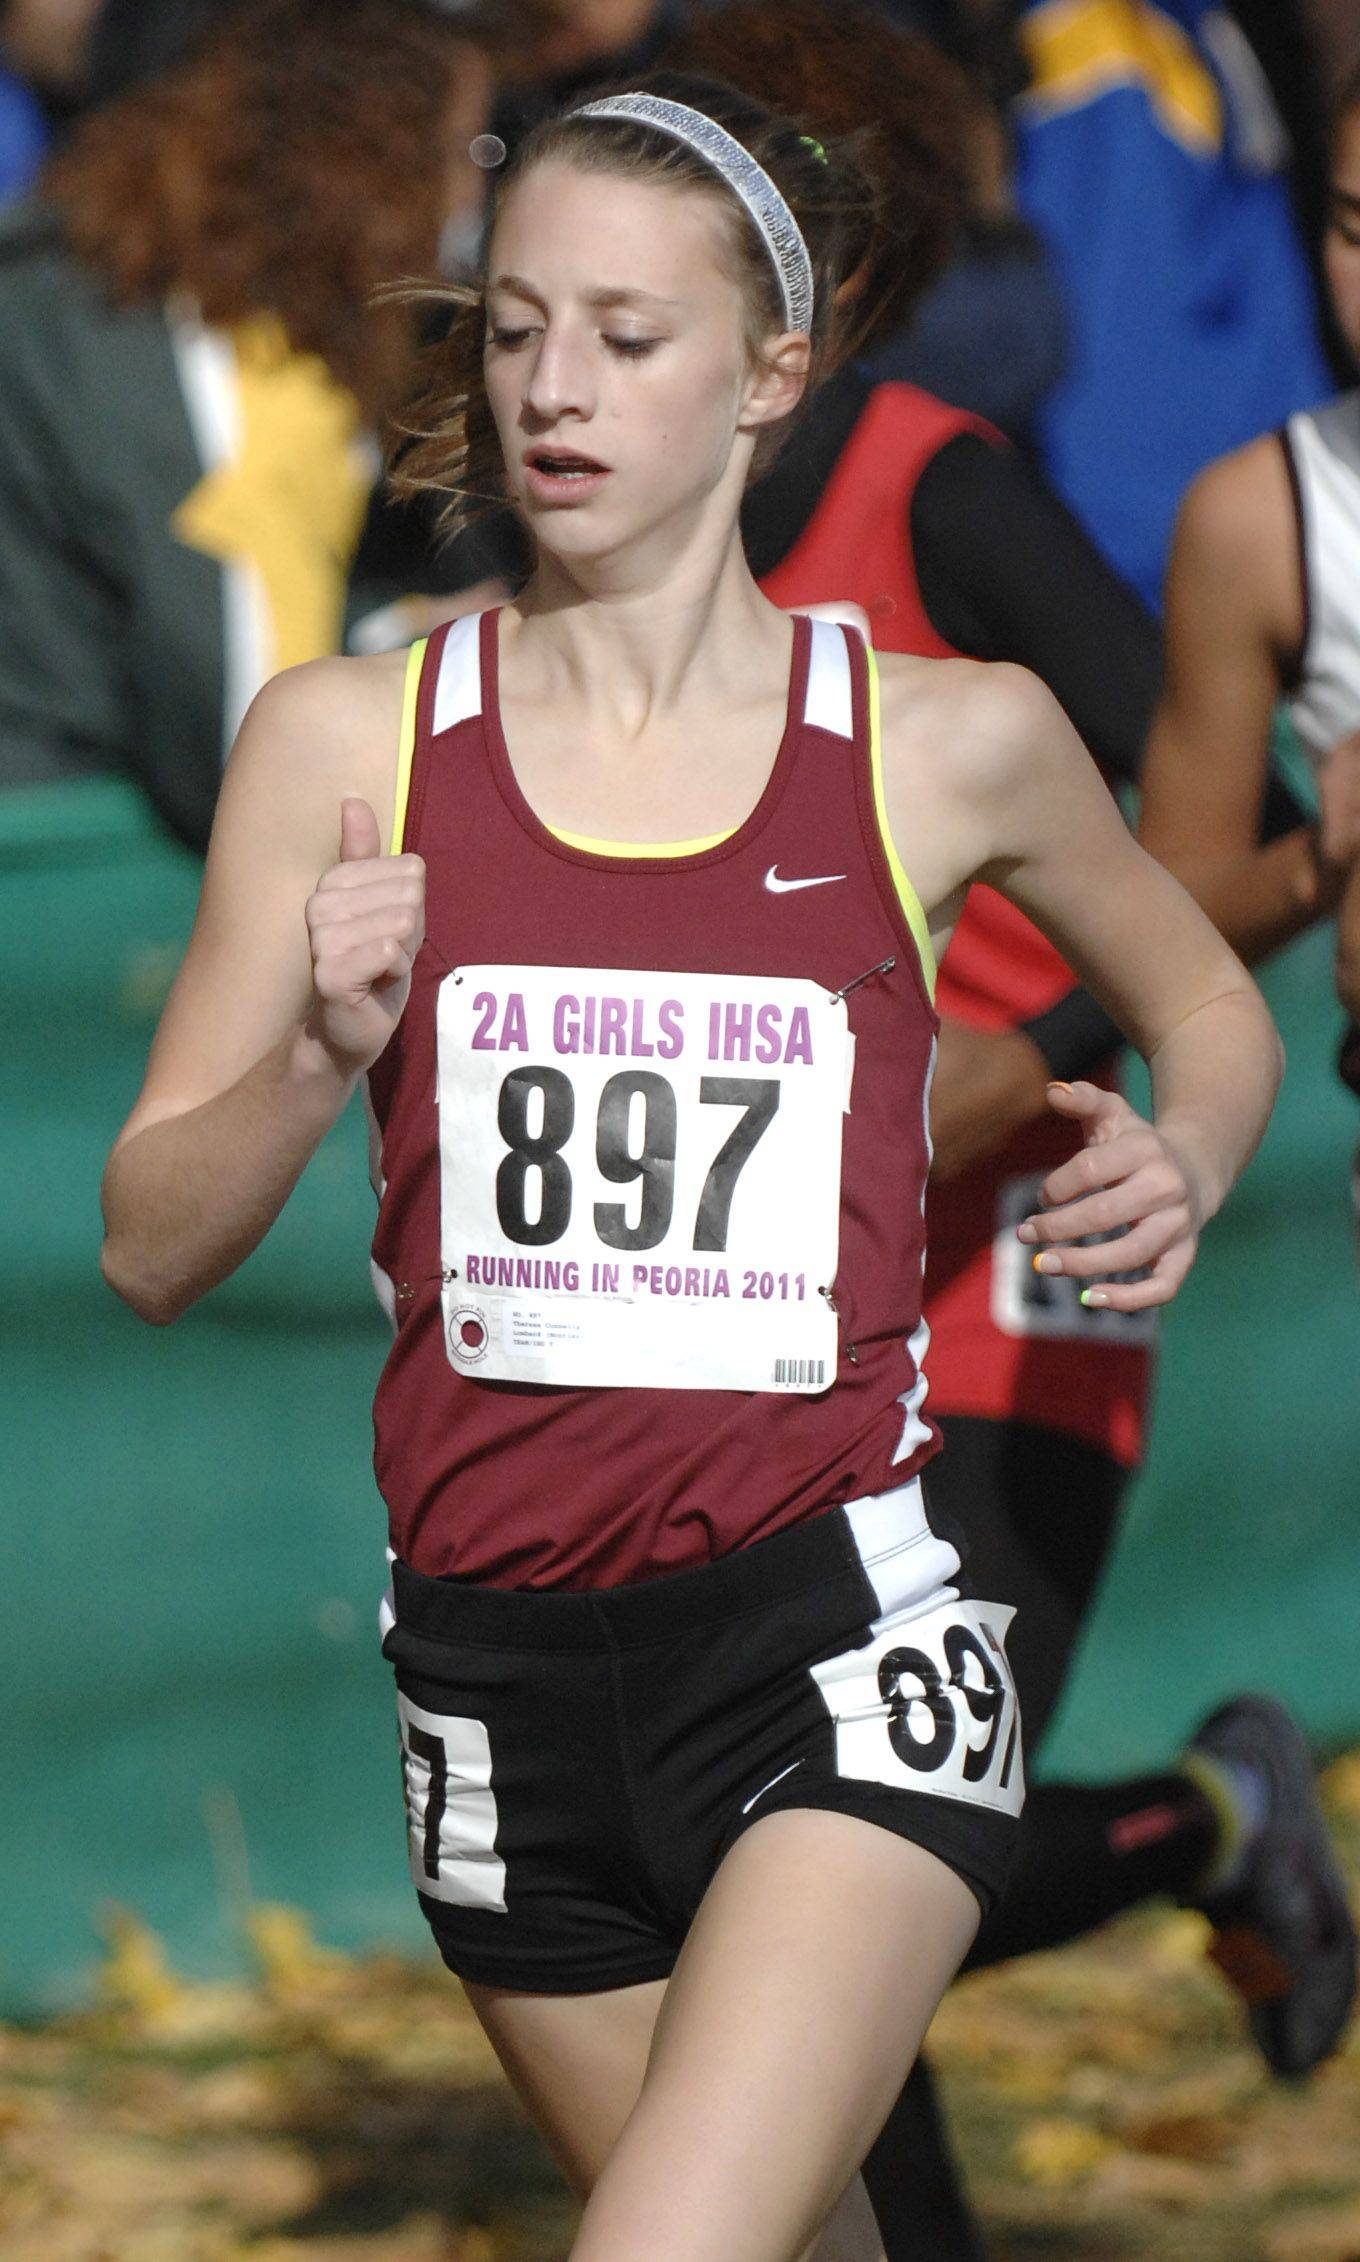 Montini's Theresa Connelly took 38th place with a time of 18:22 in the 2A state cross country final.